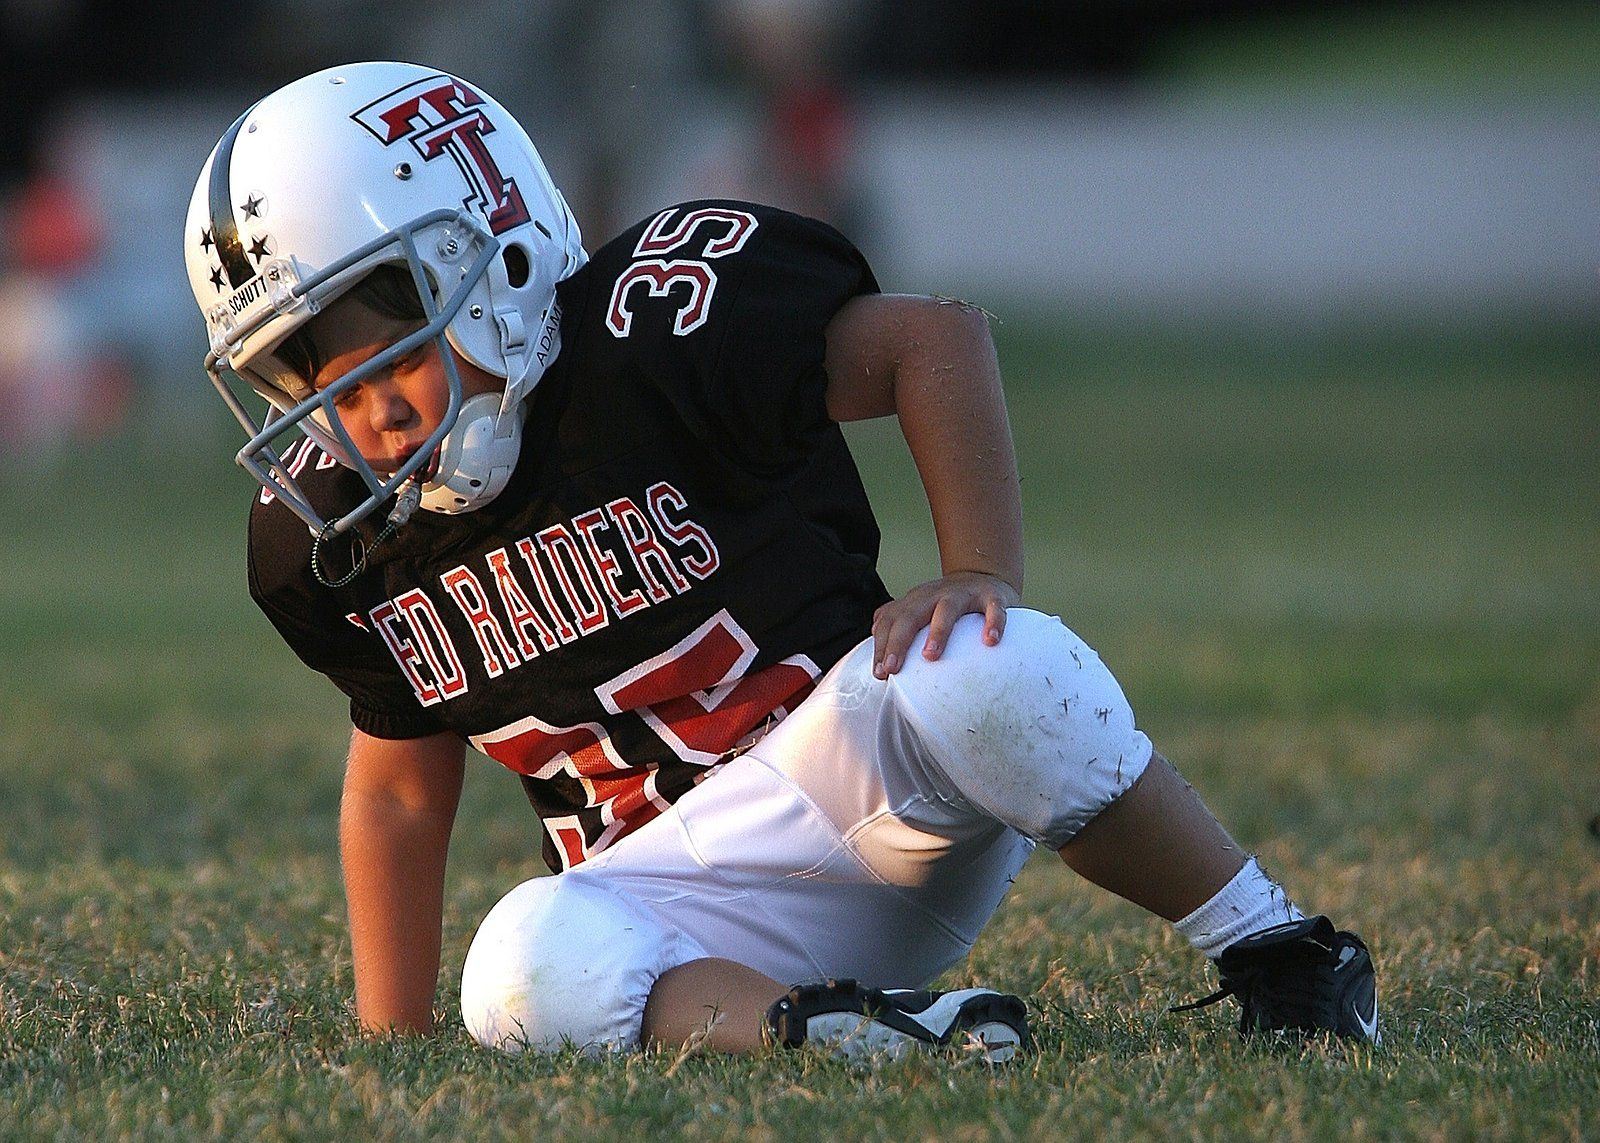 How To Talk To Kids About Concussions (Without Scaring